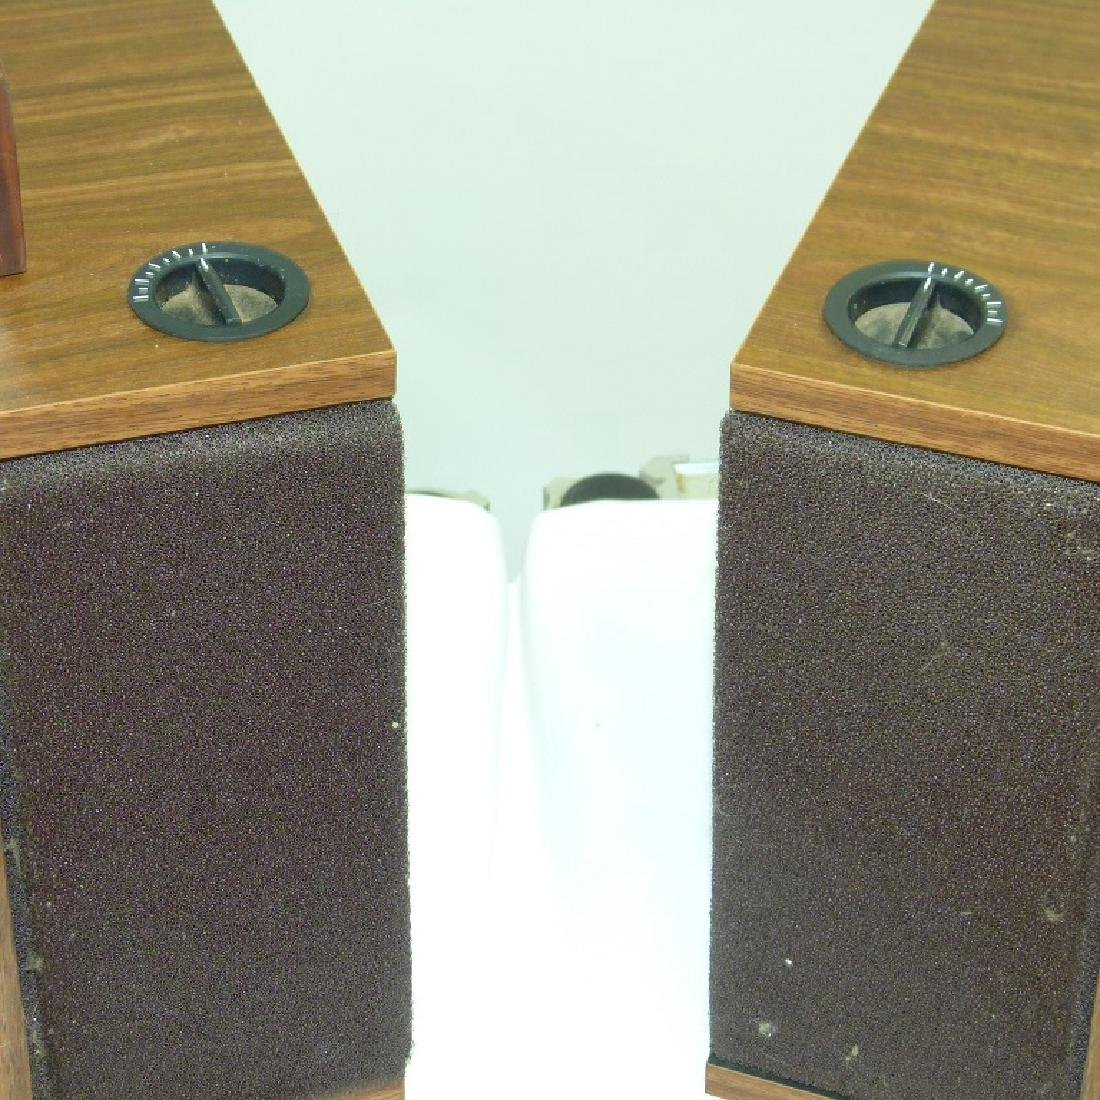 BOSE 301 SPEAKERS, C. 1970/80 - 8